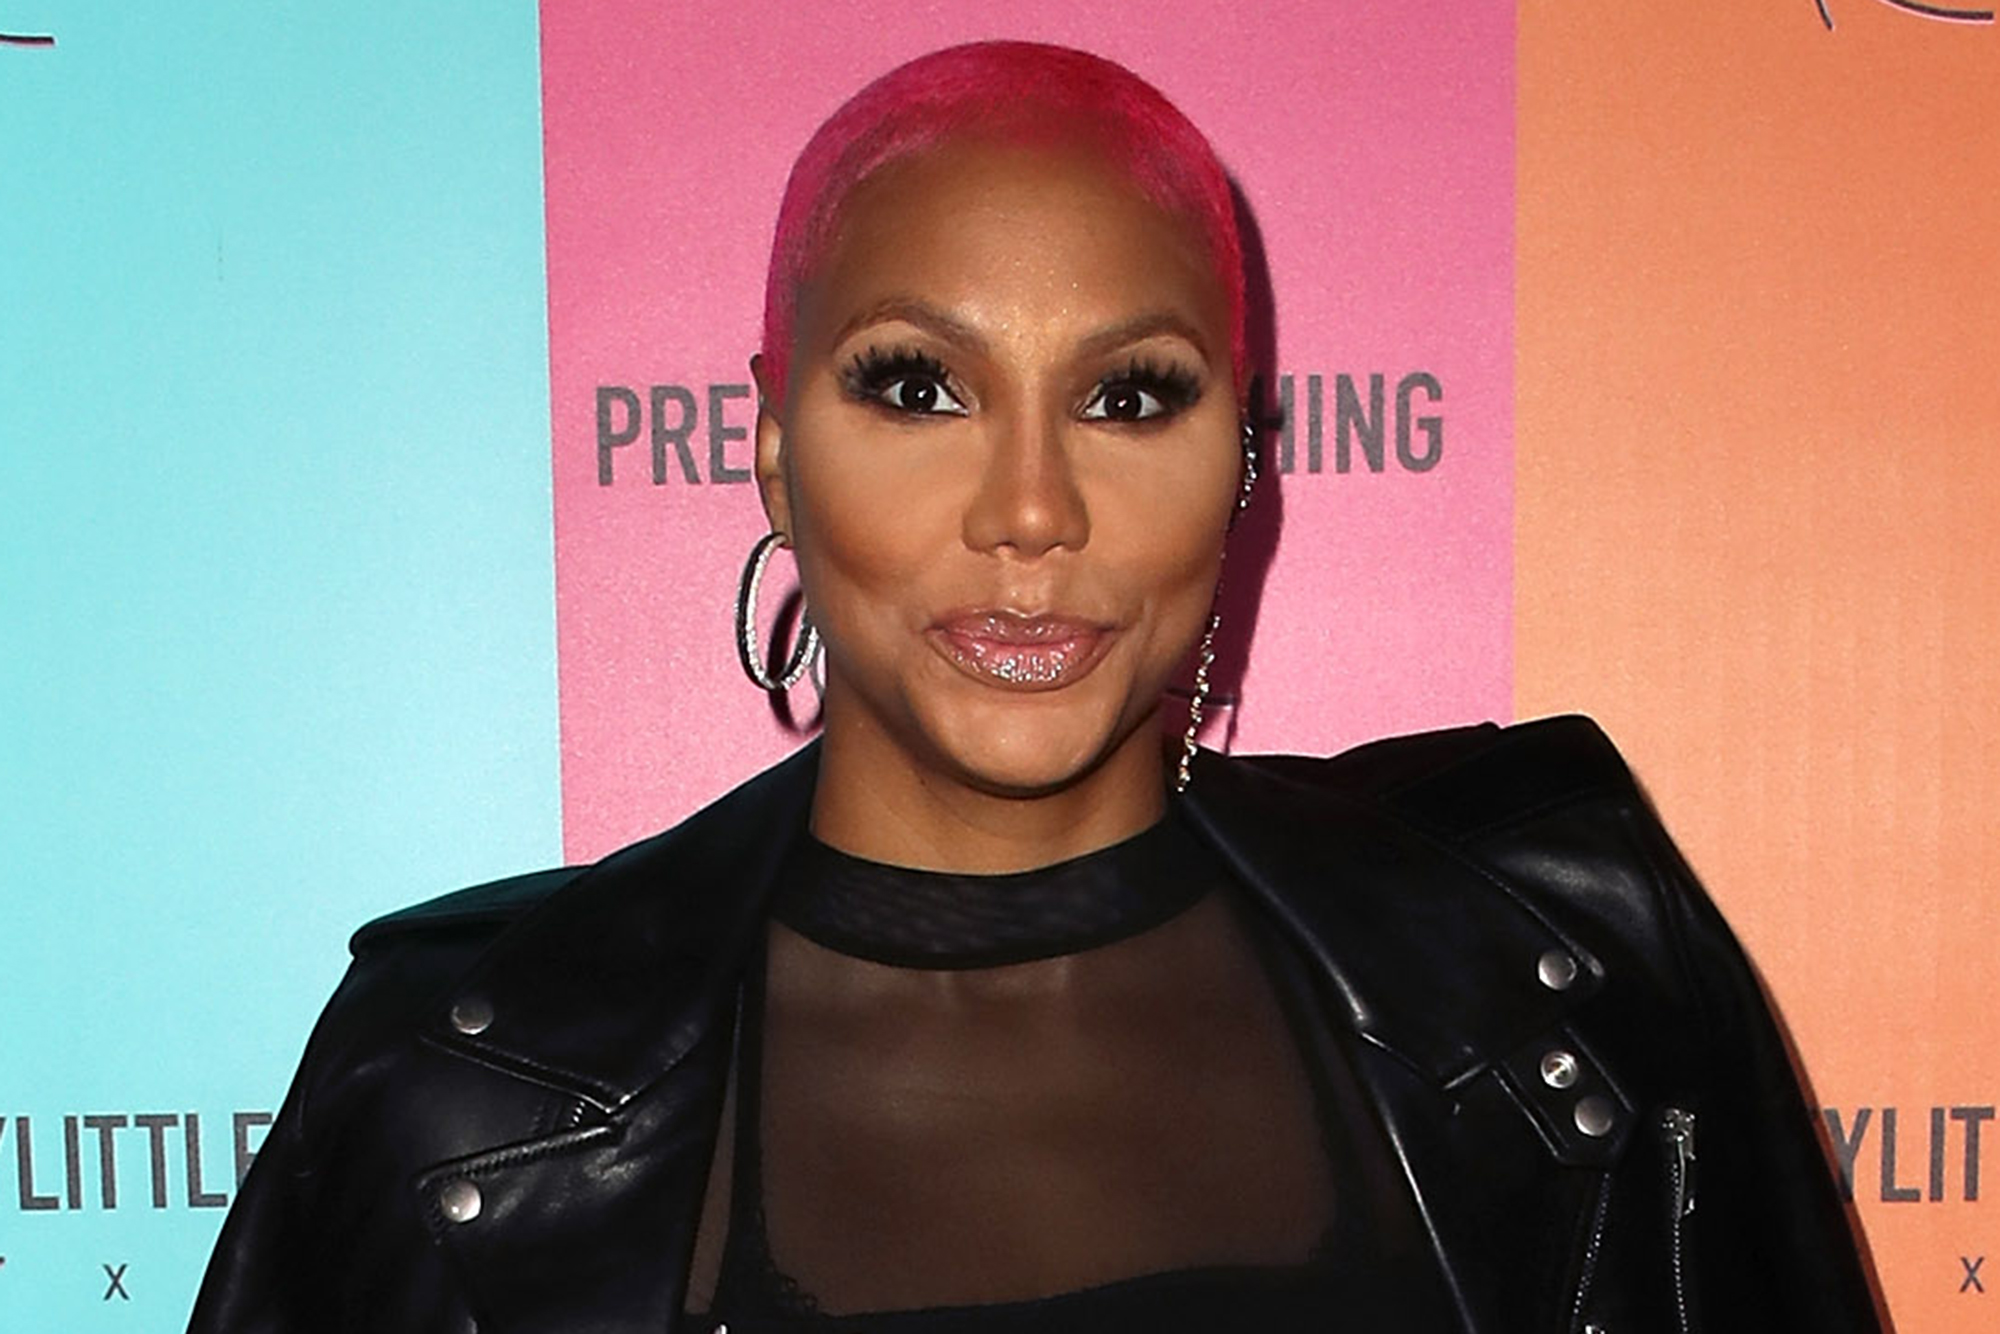 tamar-braxton-impresses-fans-with-a-message-about-herself-check-it-out-here-along-with-the-video-she-shared